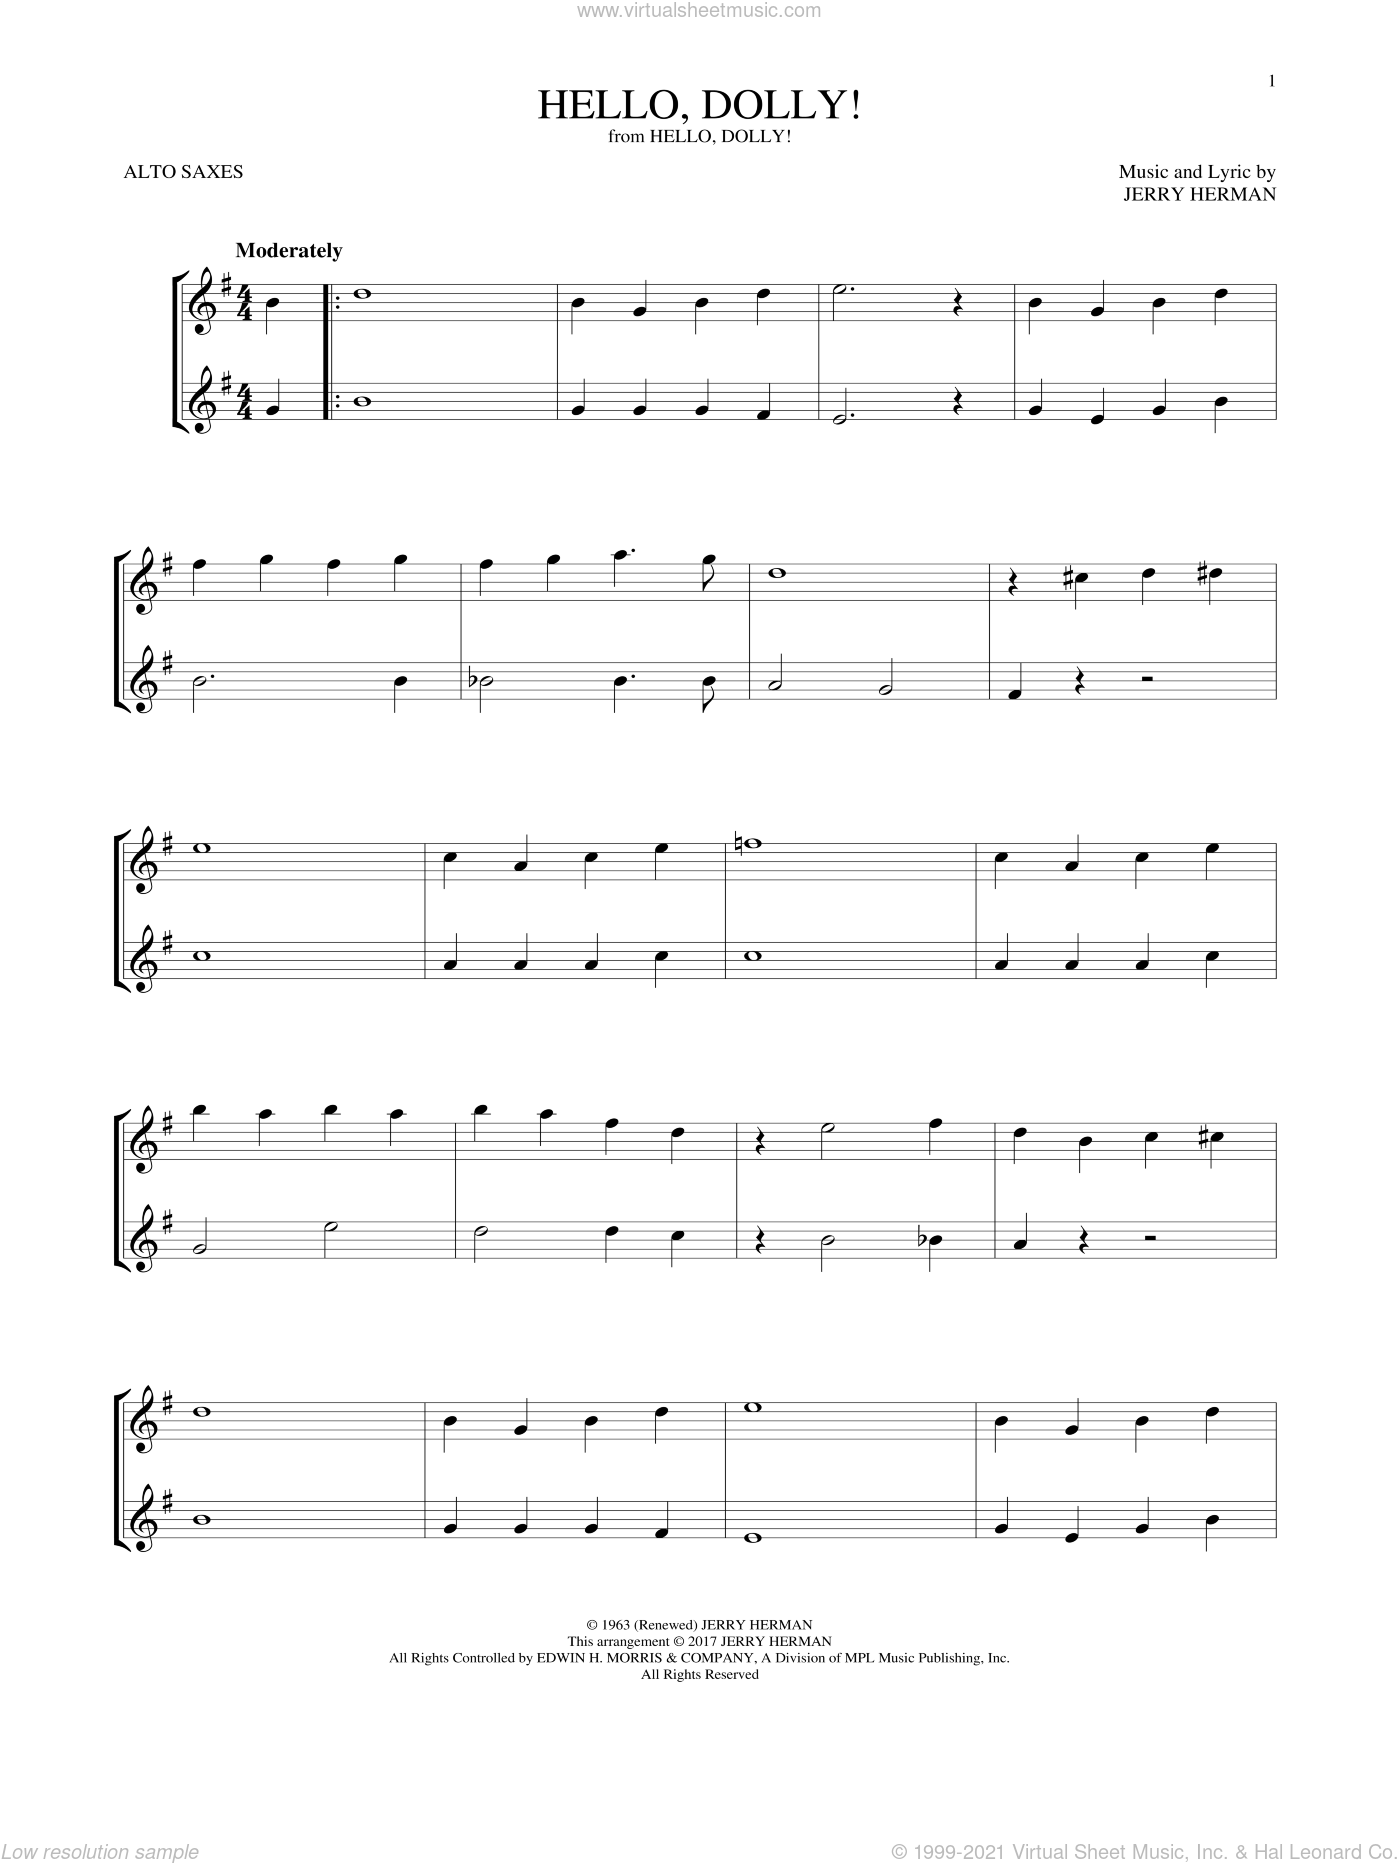 Hello, Dolly! sheet music for two alto saxophones (duets) by Louis Armstrong and Jerry Herman, intermediate skill level